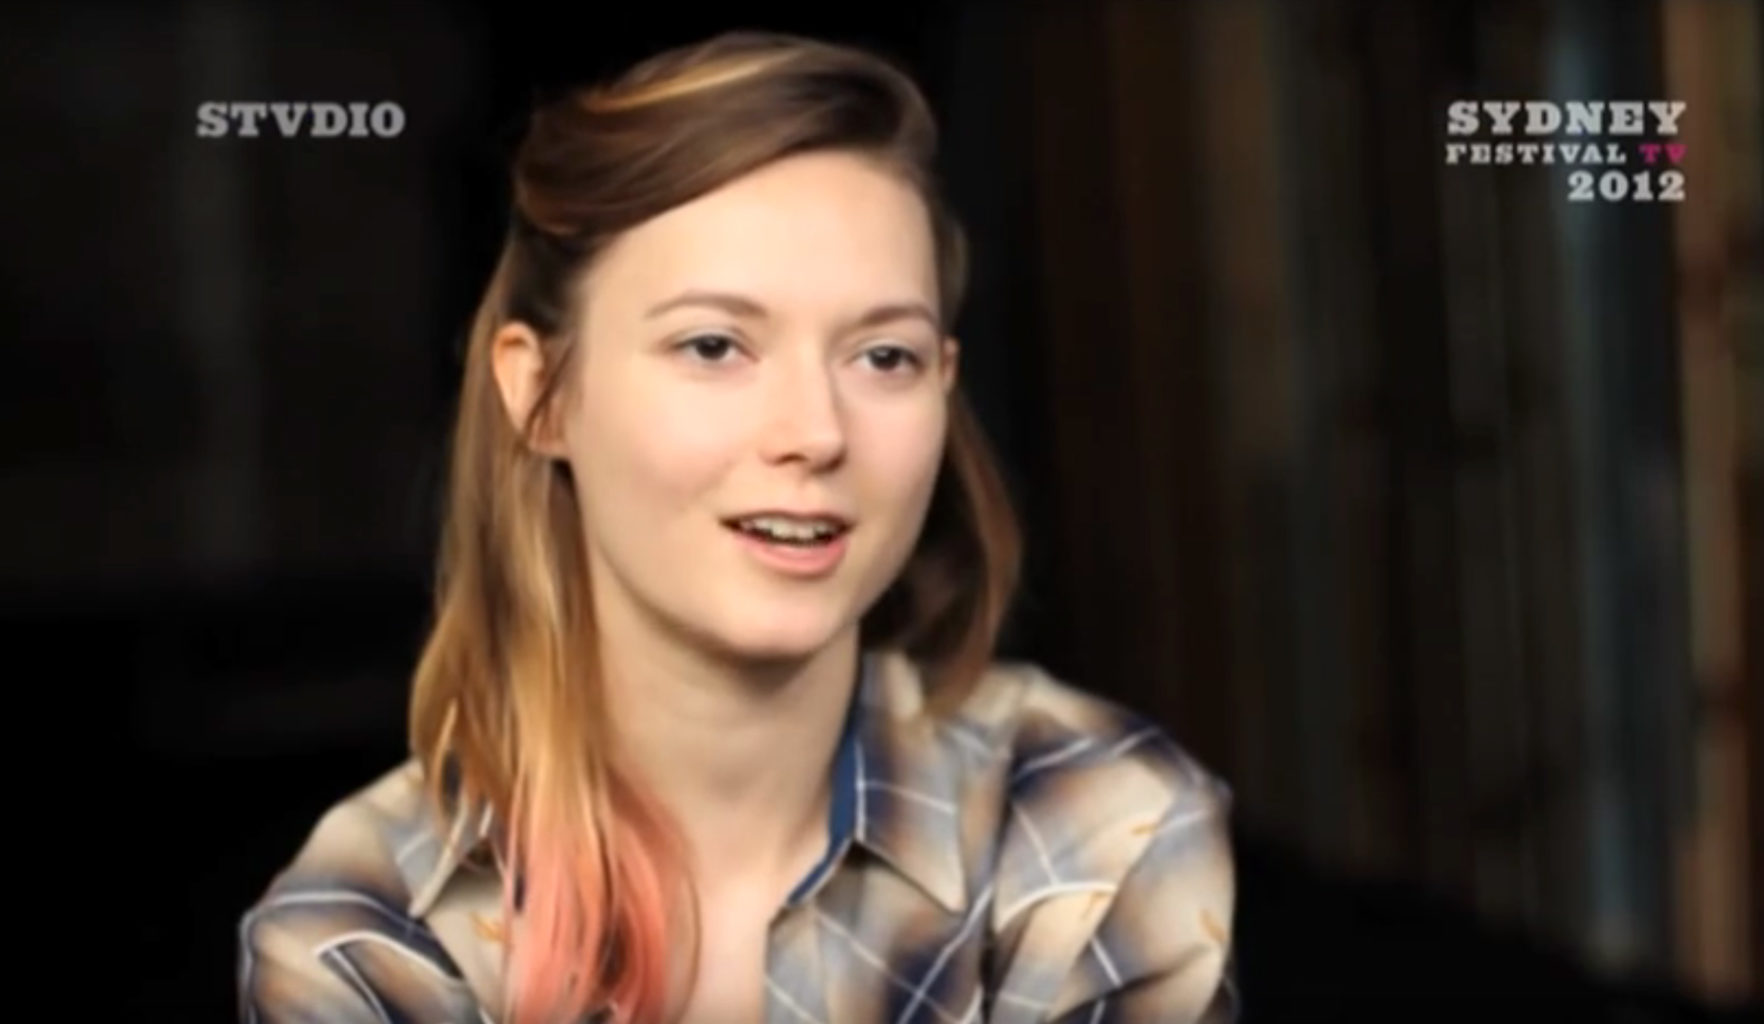 Interviews on 'Tis Pity She's A Whore (2011–2012) with Assistant Director Owen Horsley and Lydia Wilson (Annabella) from Sydney Festival